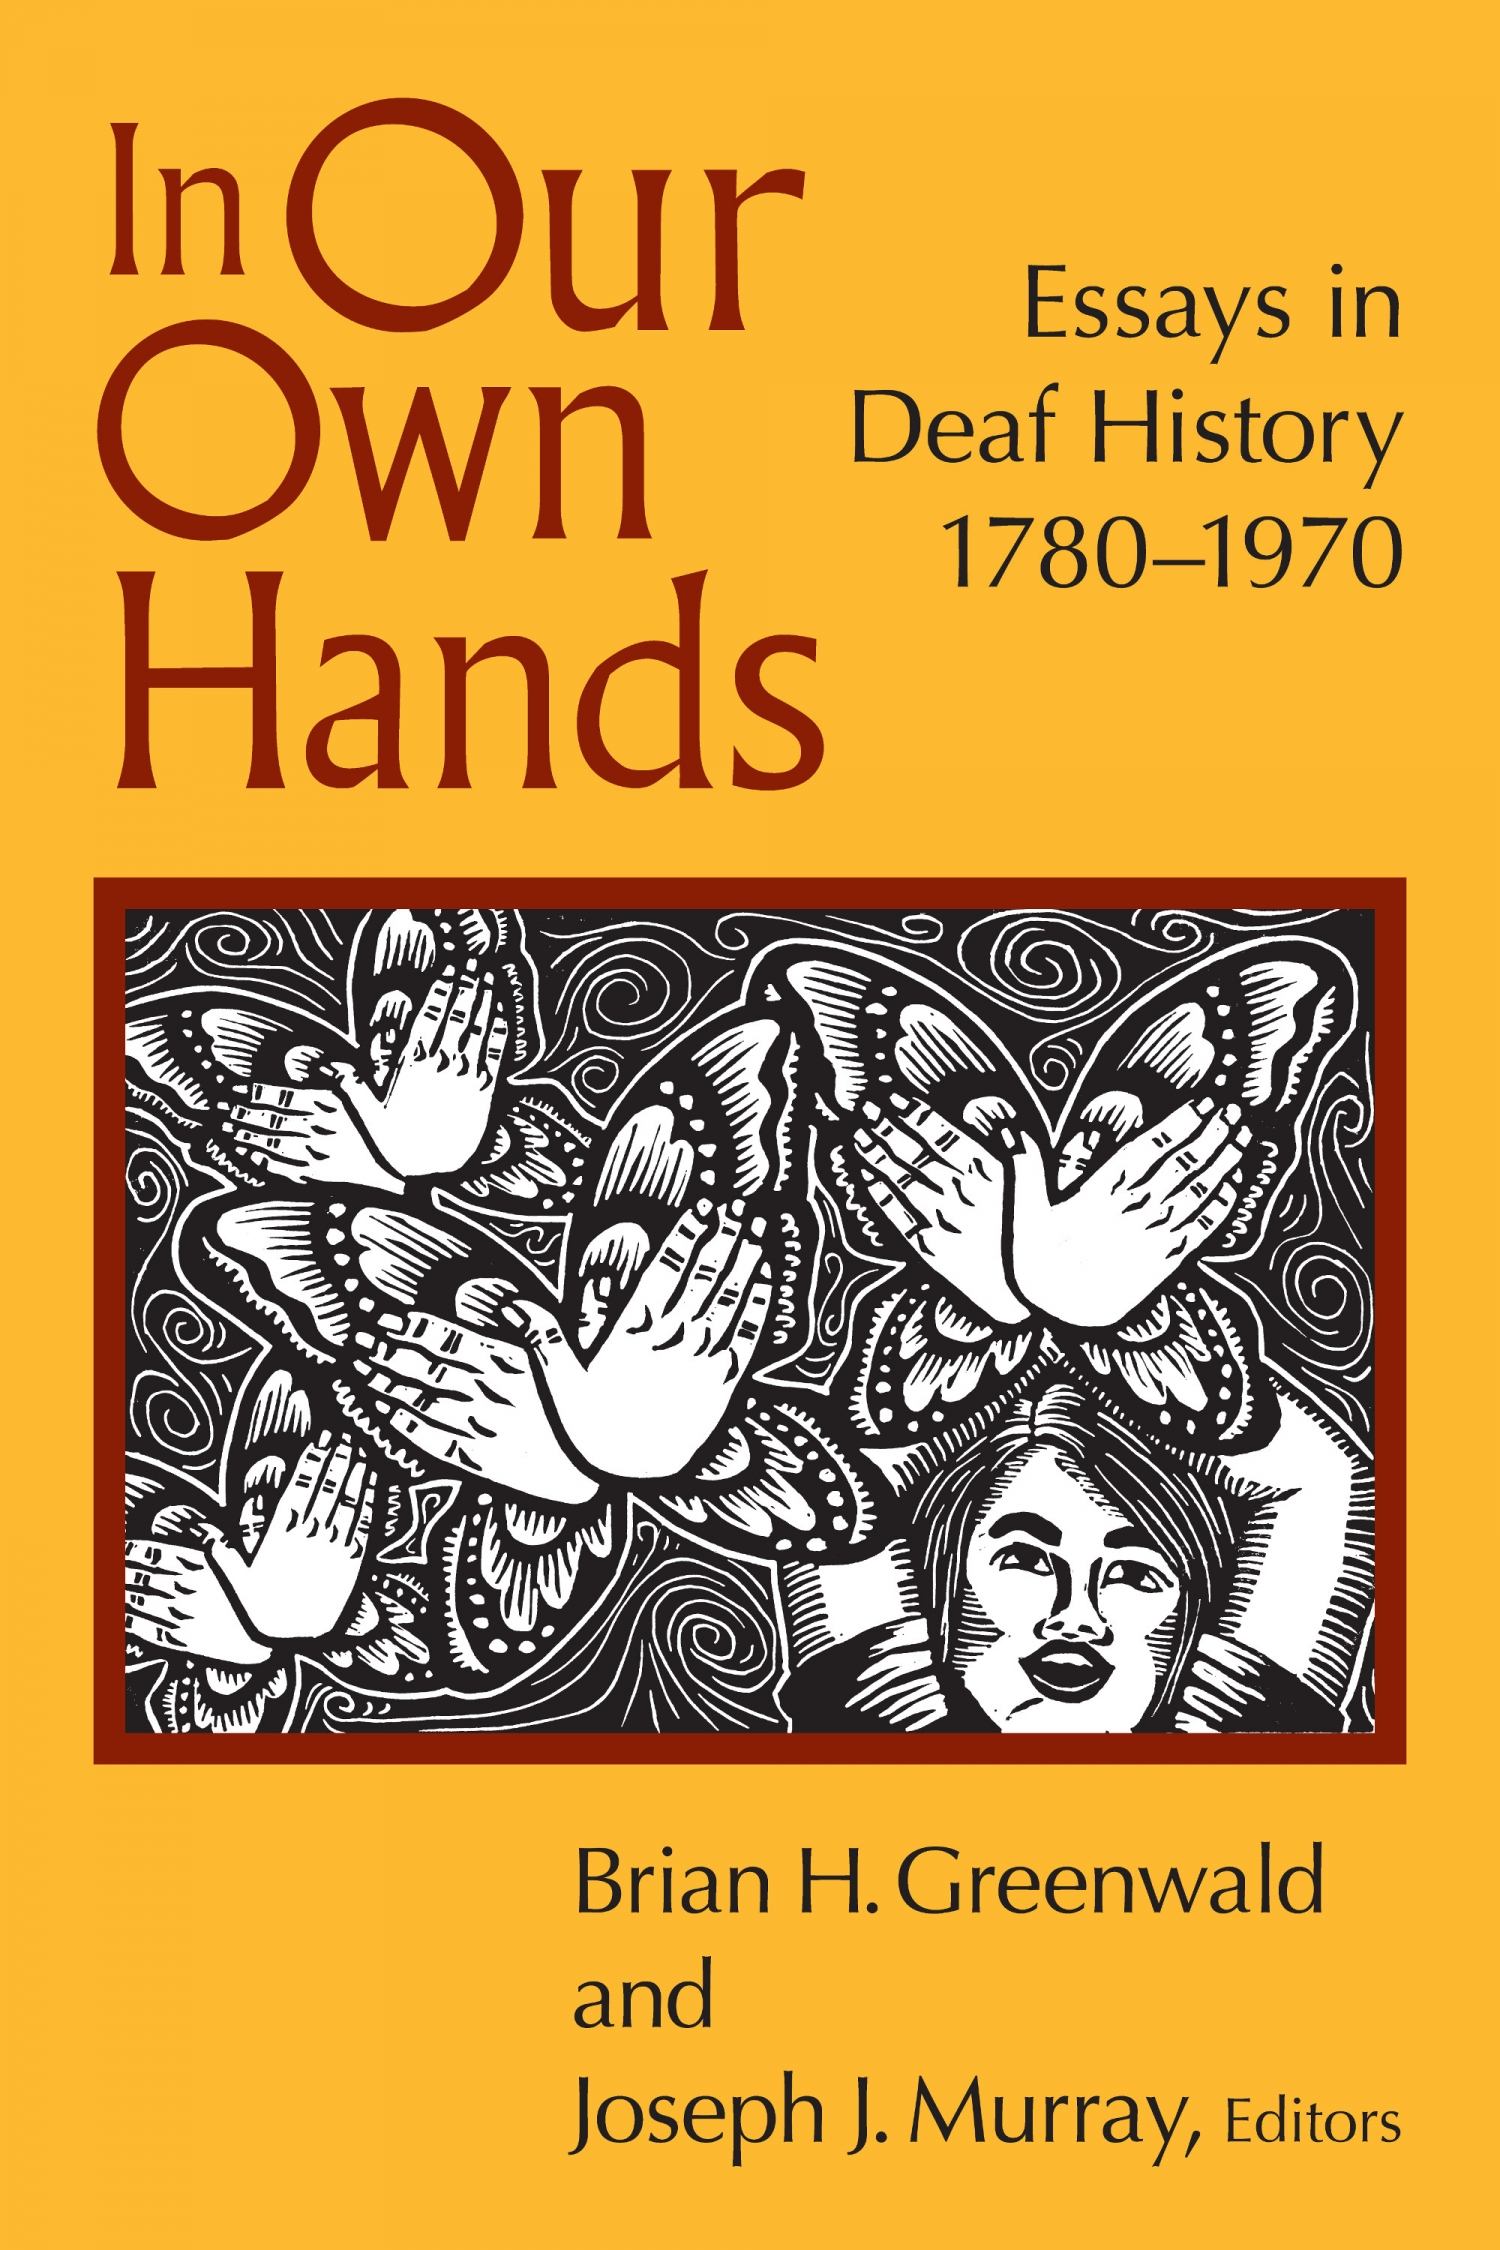 book review of in our own hands essays in deaf history  book review of in our own hands essays in deaf history 1780 1970 9781563686603 foreword reviews